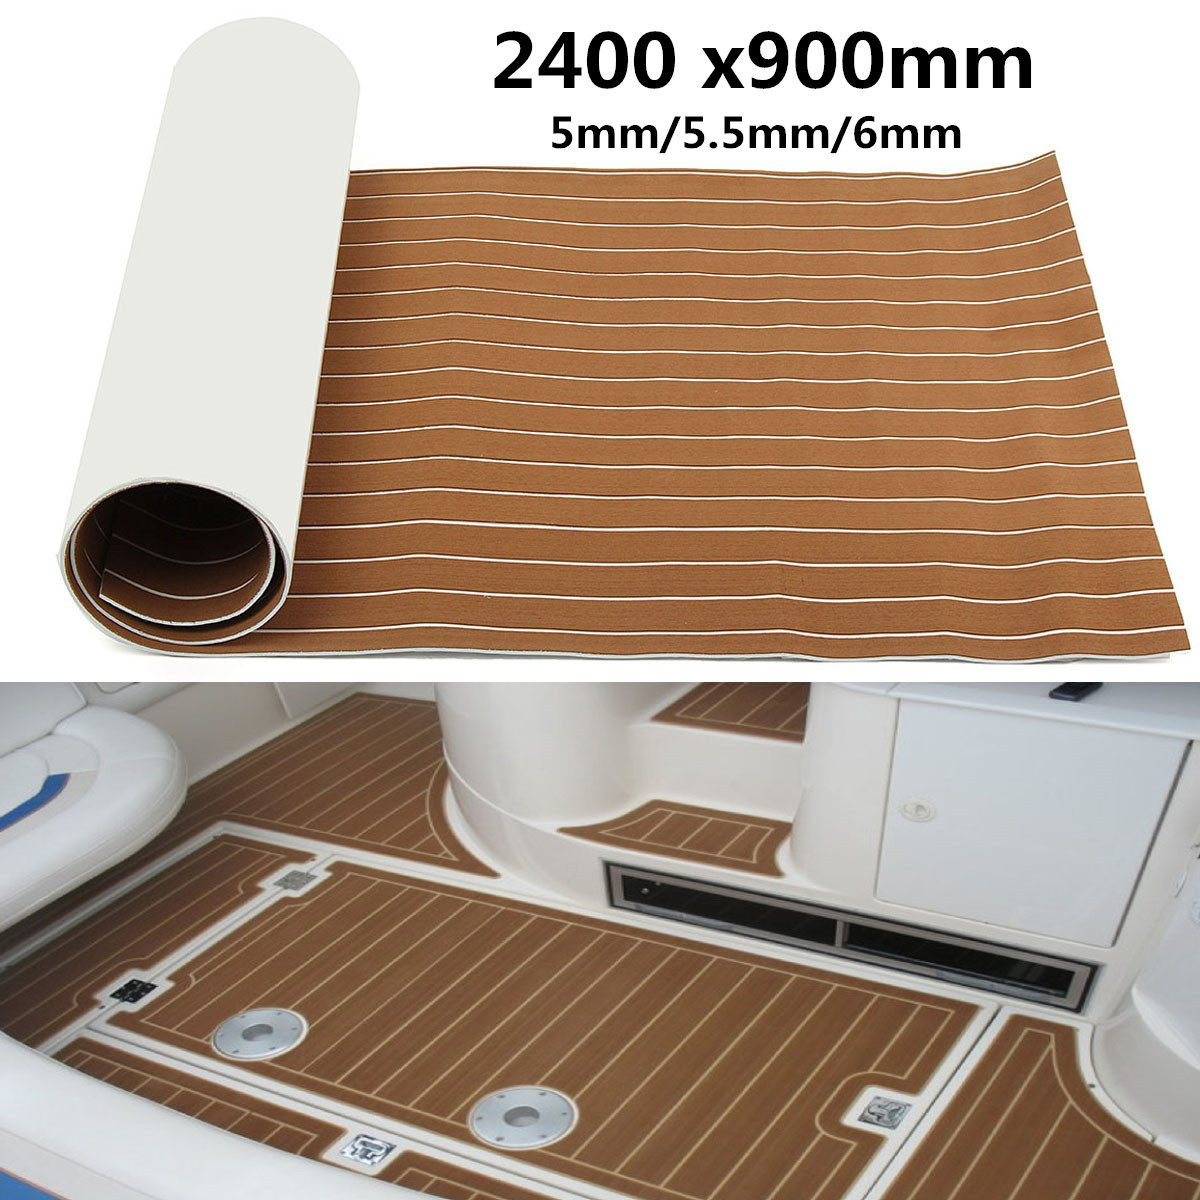 1Roll 2400x900x6mm Boat Marine Flooring Faux Teak EVA Foam Decking Sheet Decor Self Adhesive EVA Foam Floor Mat Cover Brown Gray